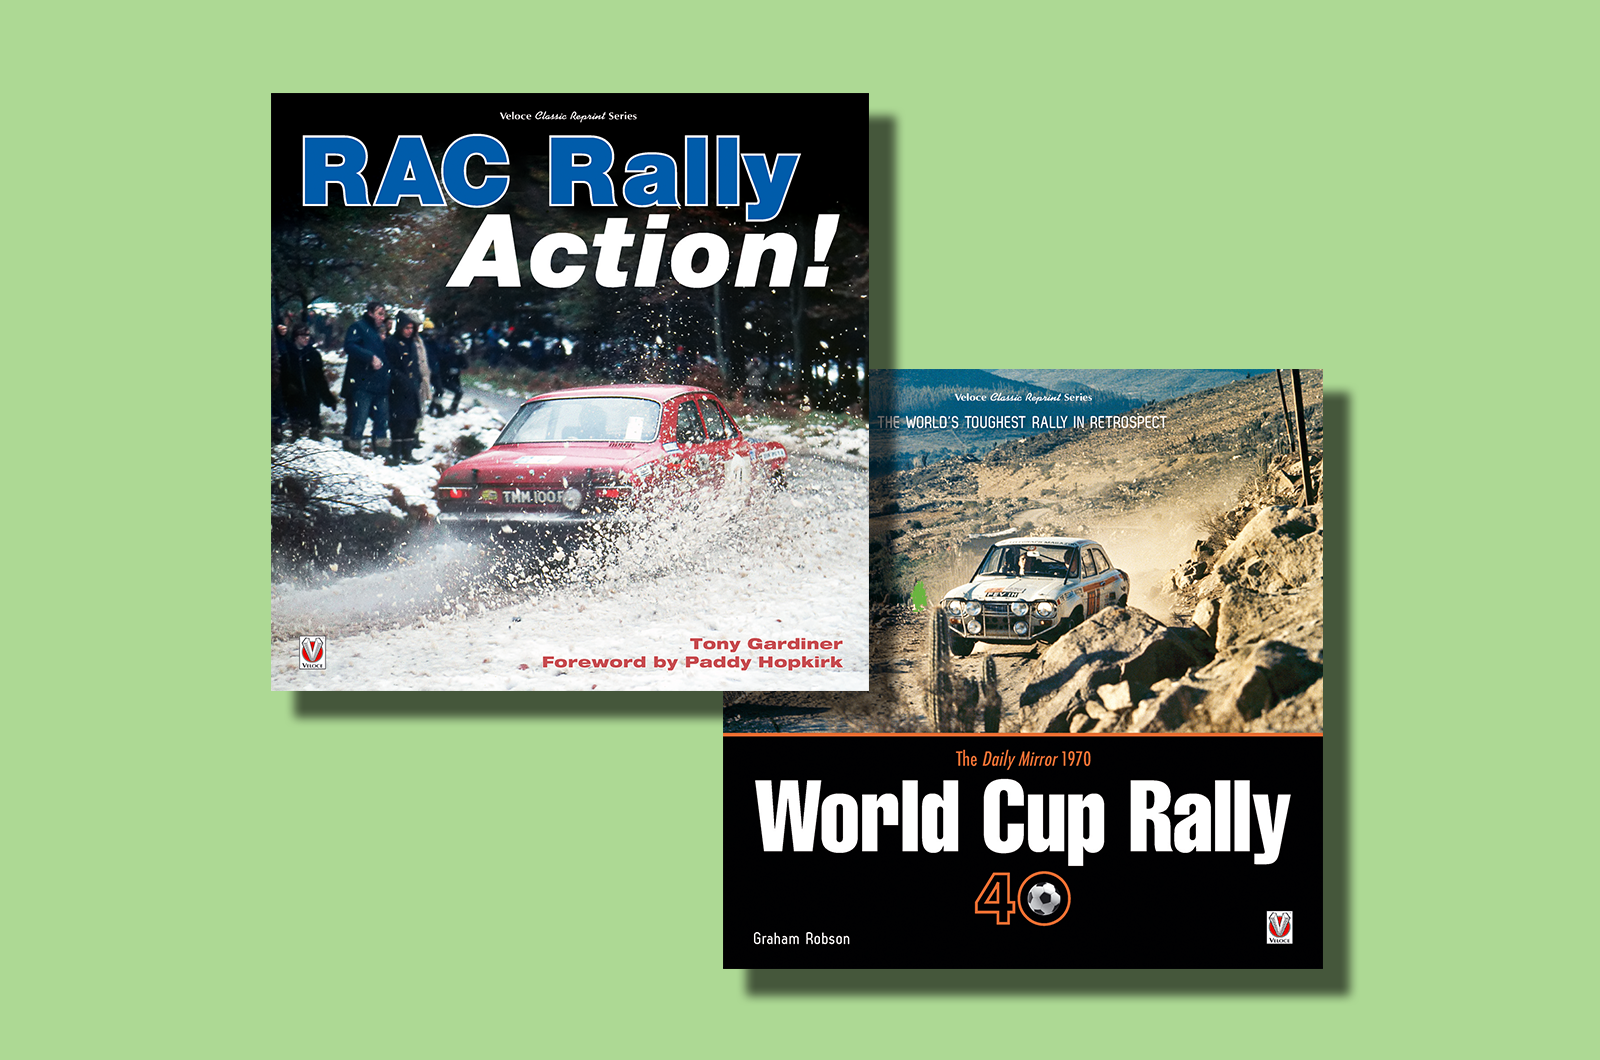 rac_rally_action_world_cup_rally.png